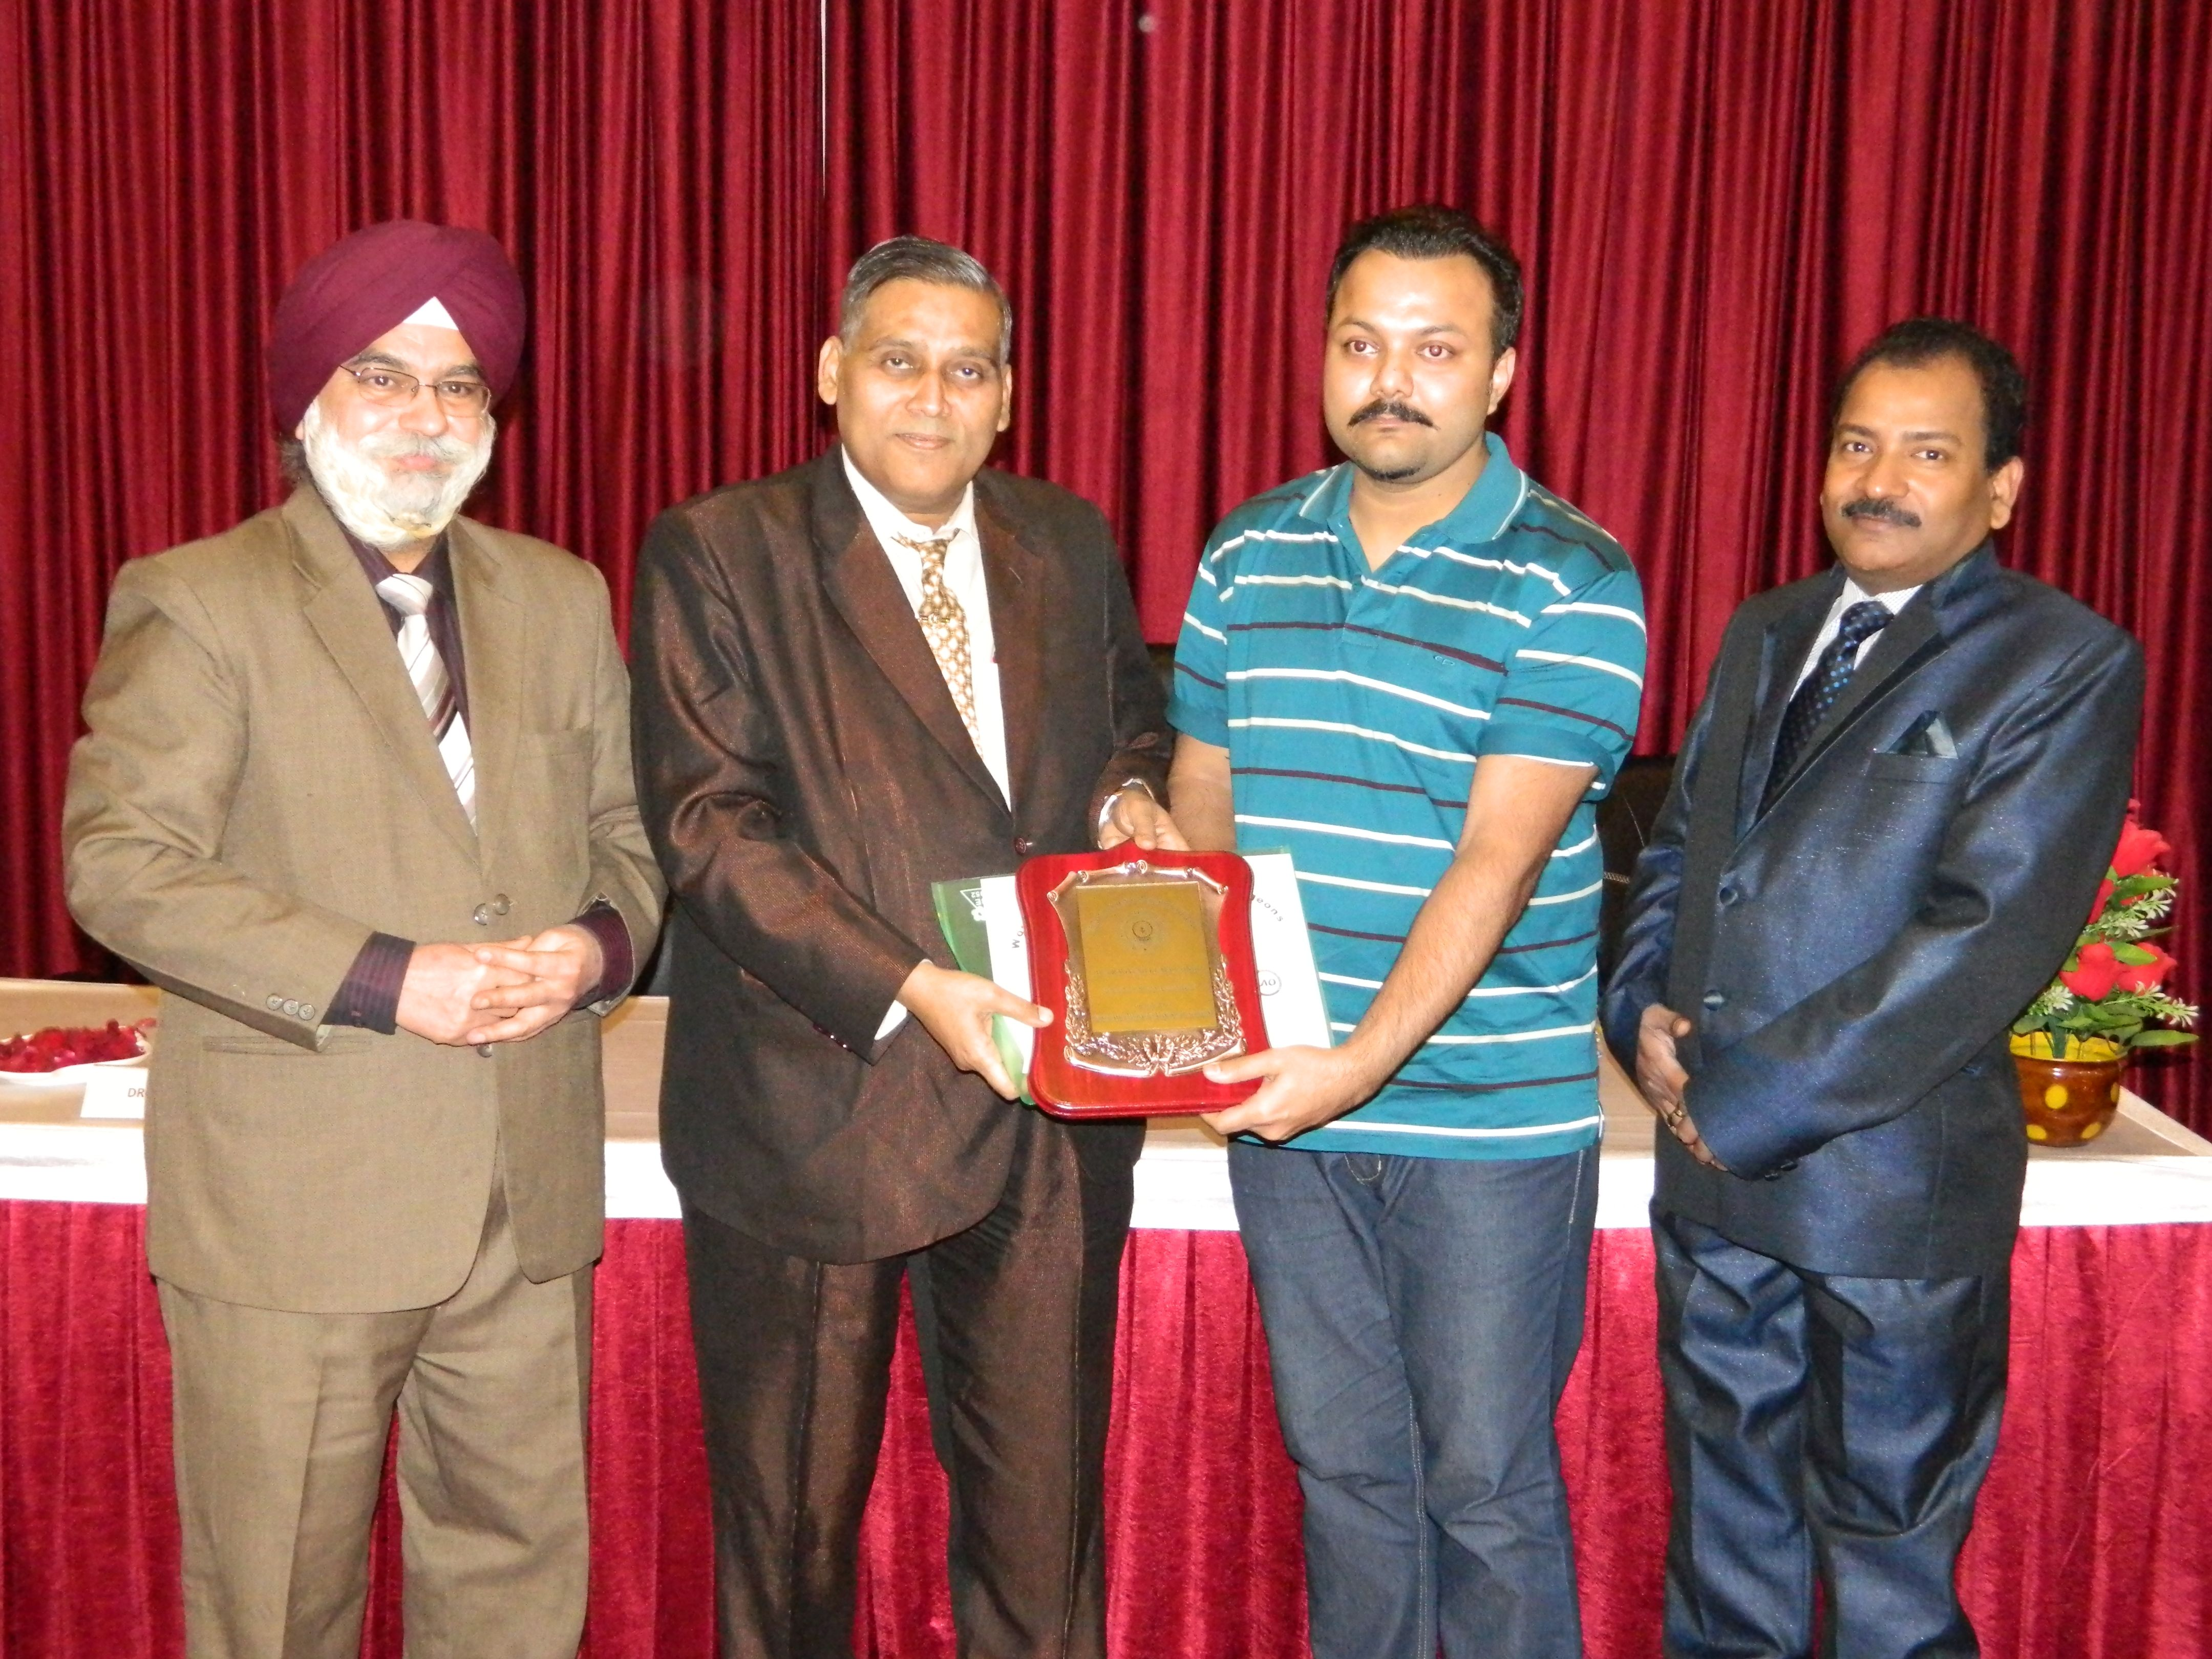 Dr. Pragyesh Kumar Singh receiving certificate of Fellowship in minimal access Surgery at World Laparoscopy Hospital. For more detail please log on to www.laparoscopyhospital.com